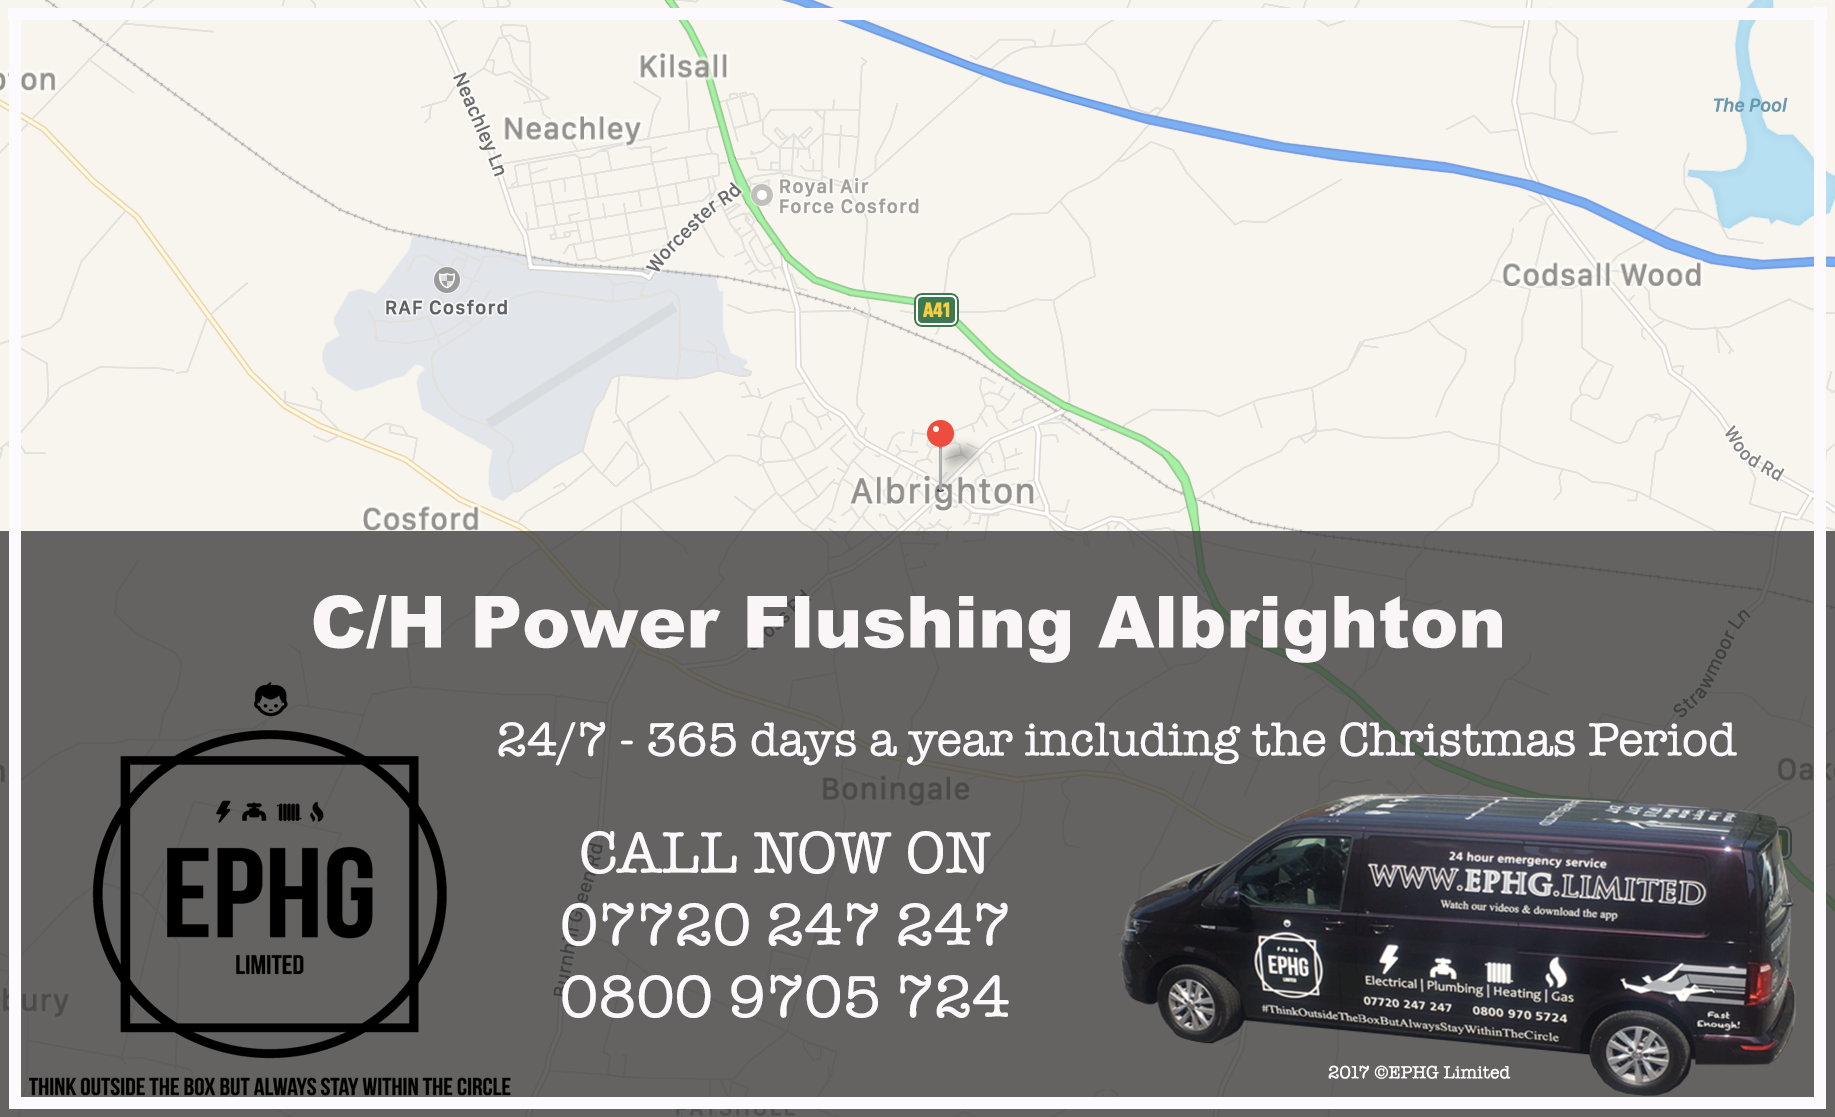 Central Heating Power Flush Albrighton